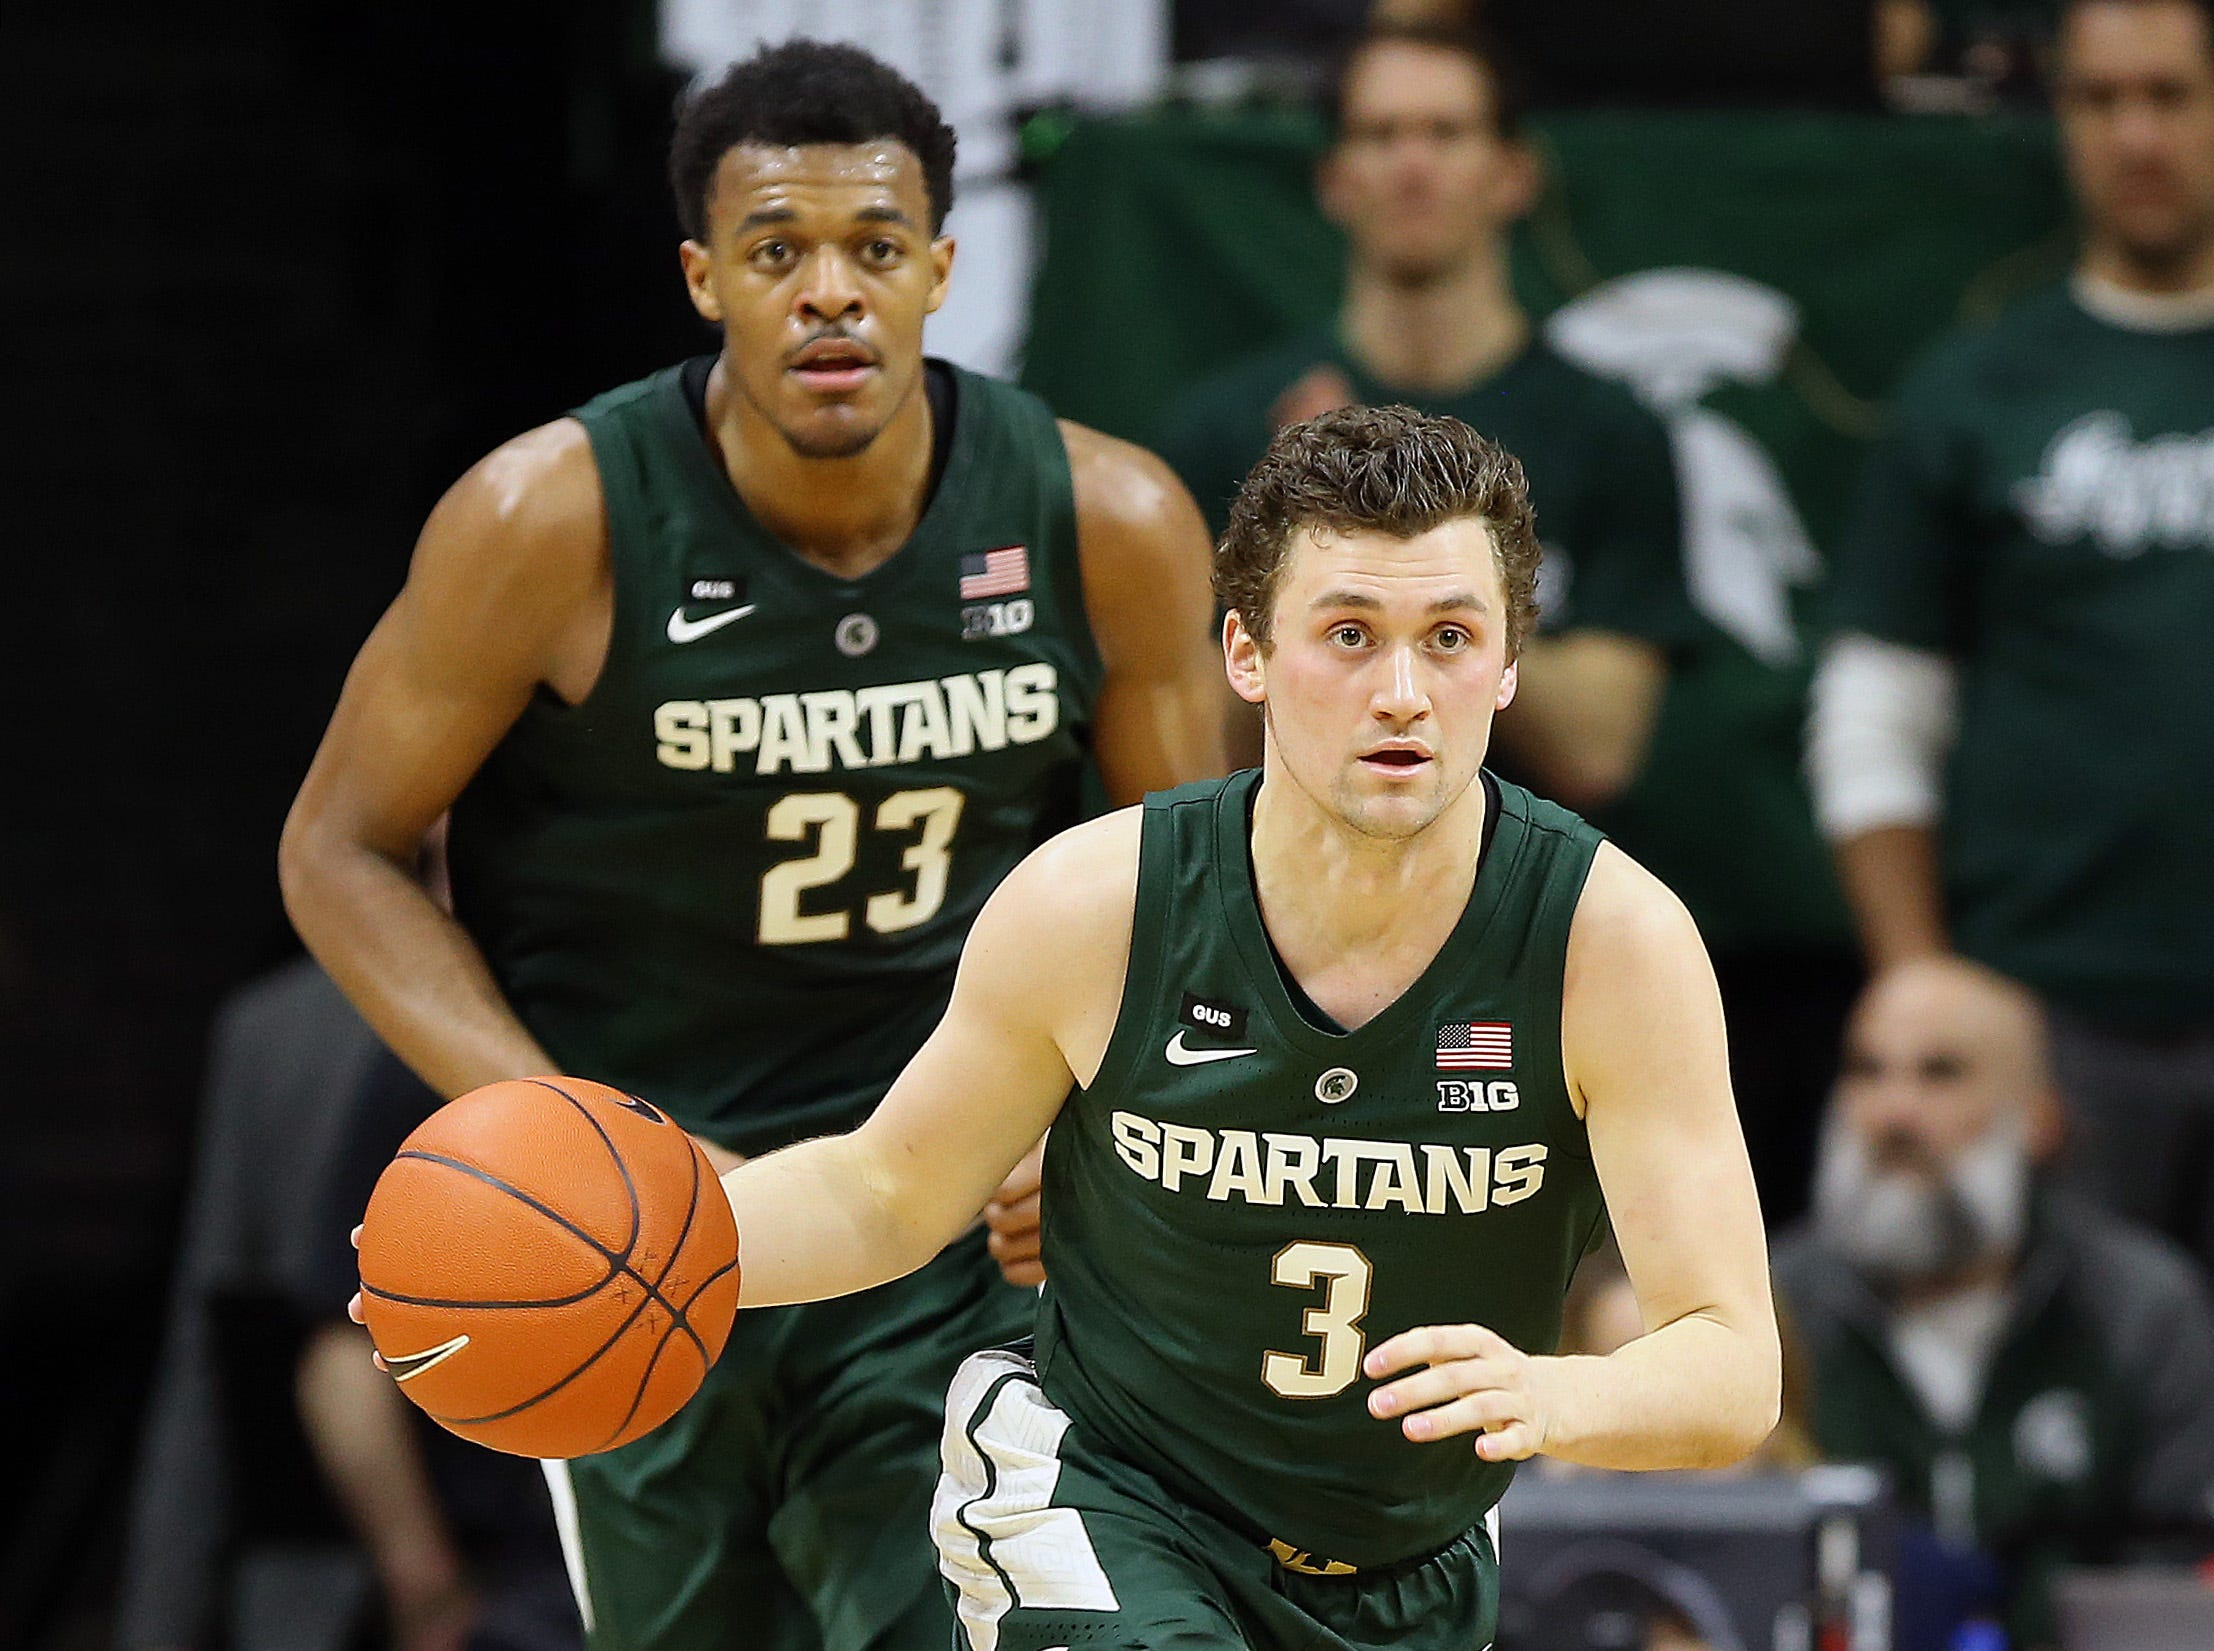 Mar 5, 2019; East Lansing, MI, USA; Michigan State Spartans guard Foster Loyer (3) brings the ball up court during the second half against the Nebraska Cornhuskers at the Breslin Center. Mandatory Credit: Mike Carter-USA TODAY Sports